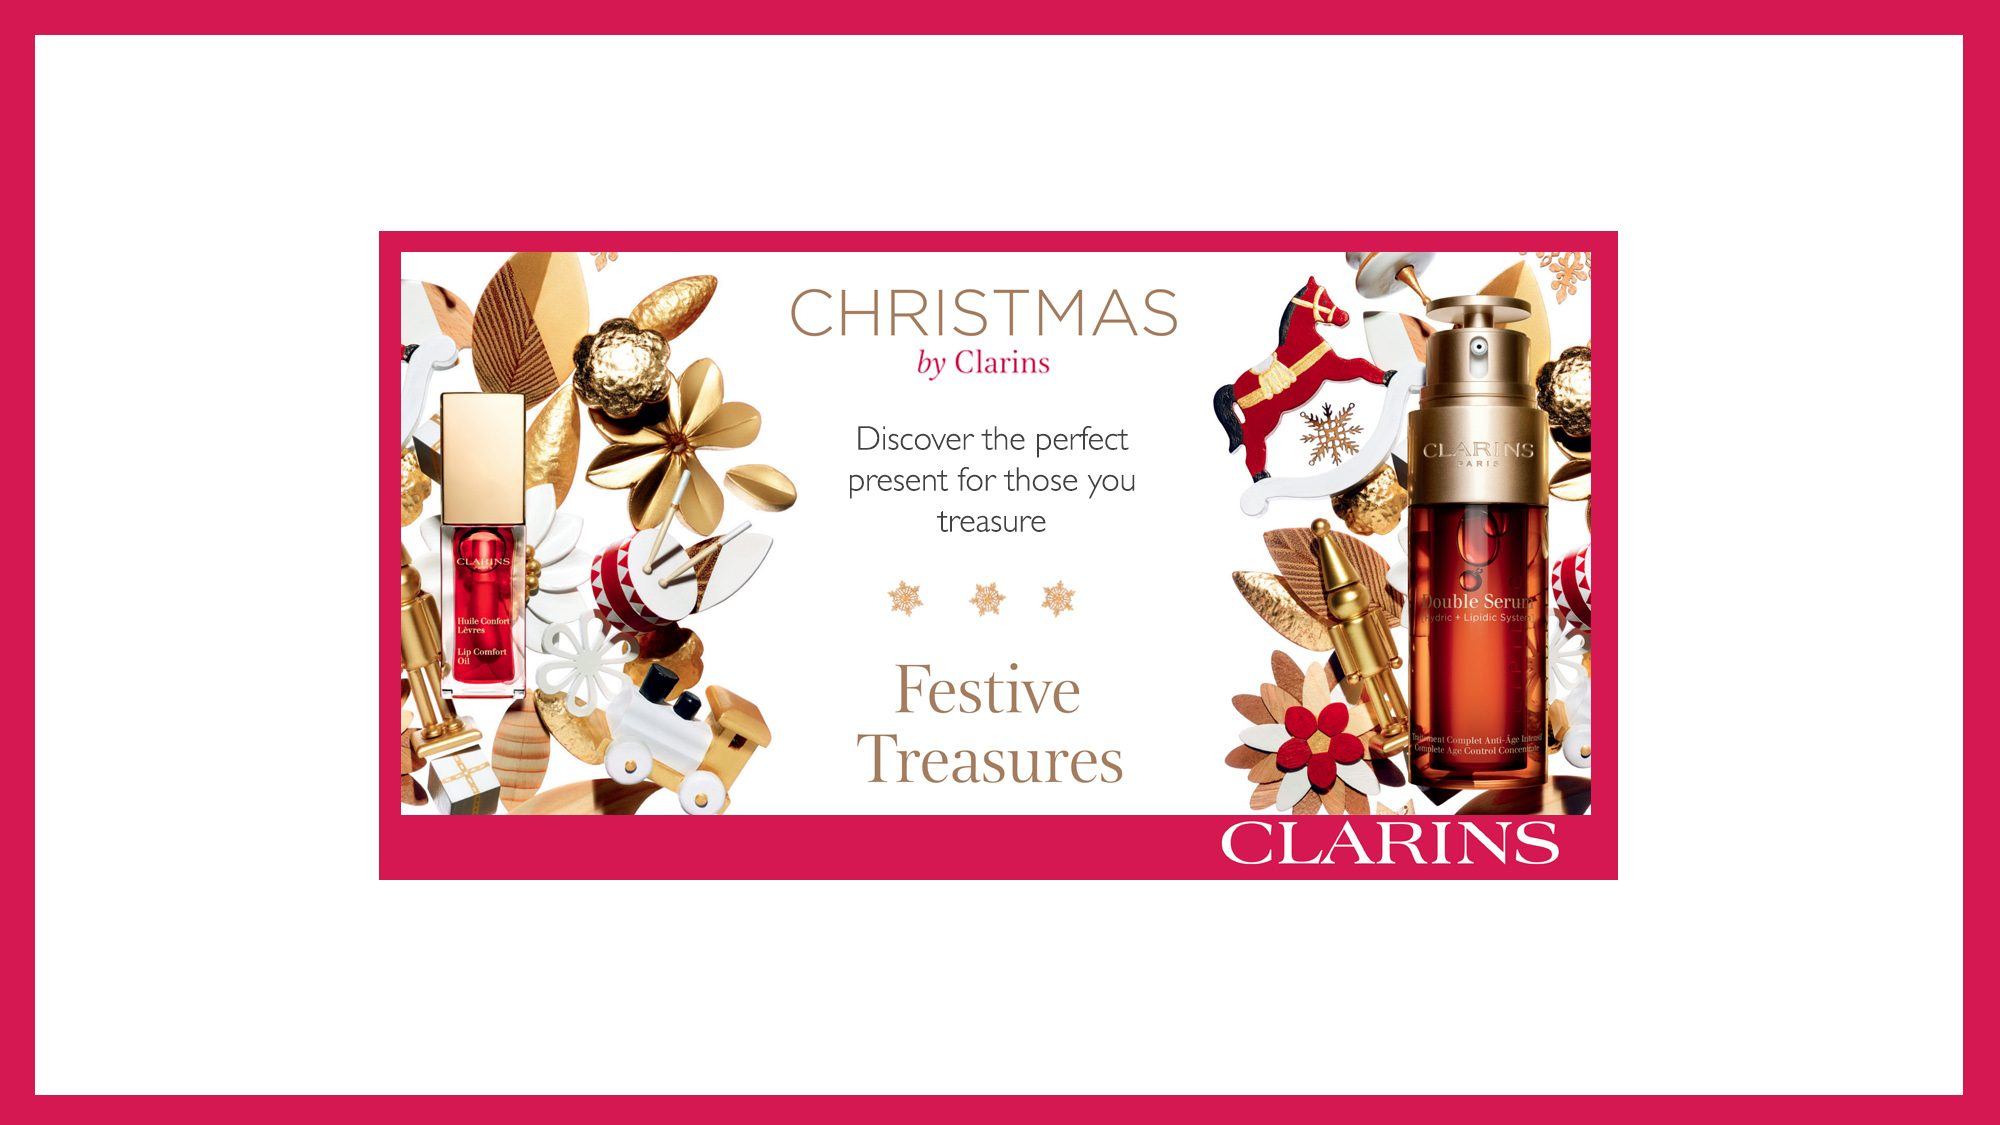 Clarins Christmas Treasures at Frontlinestyle